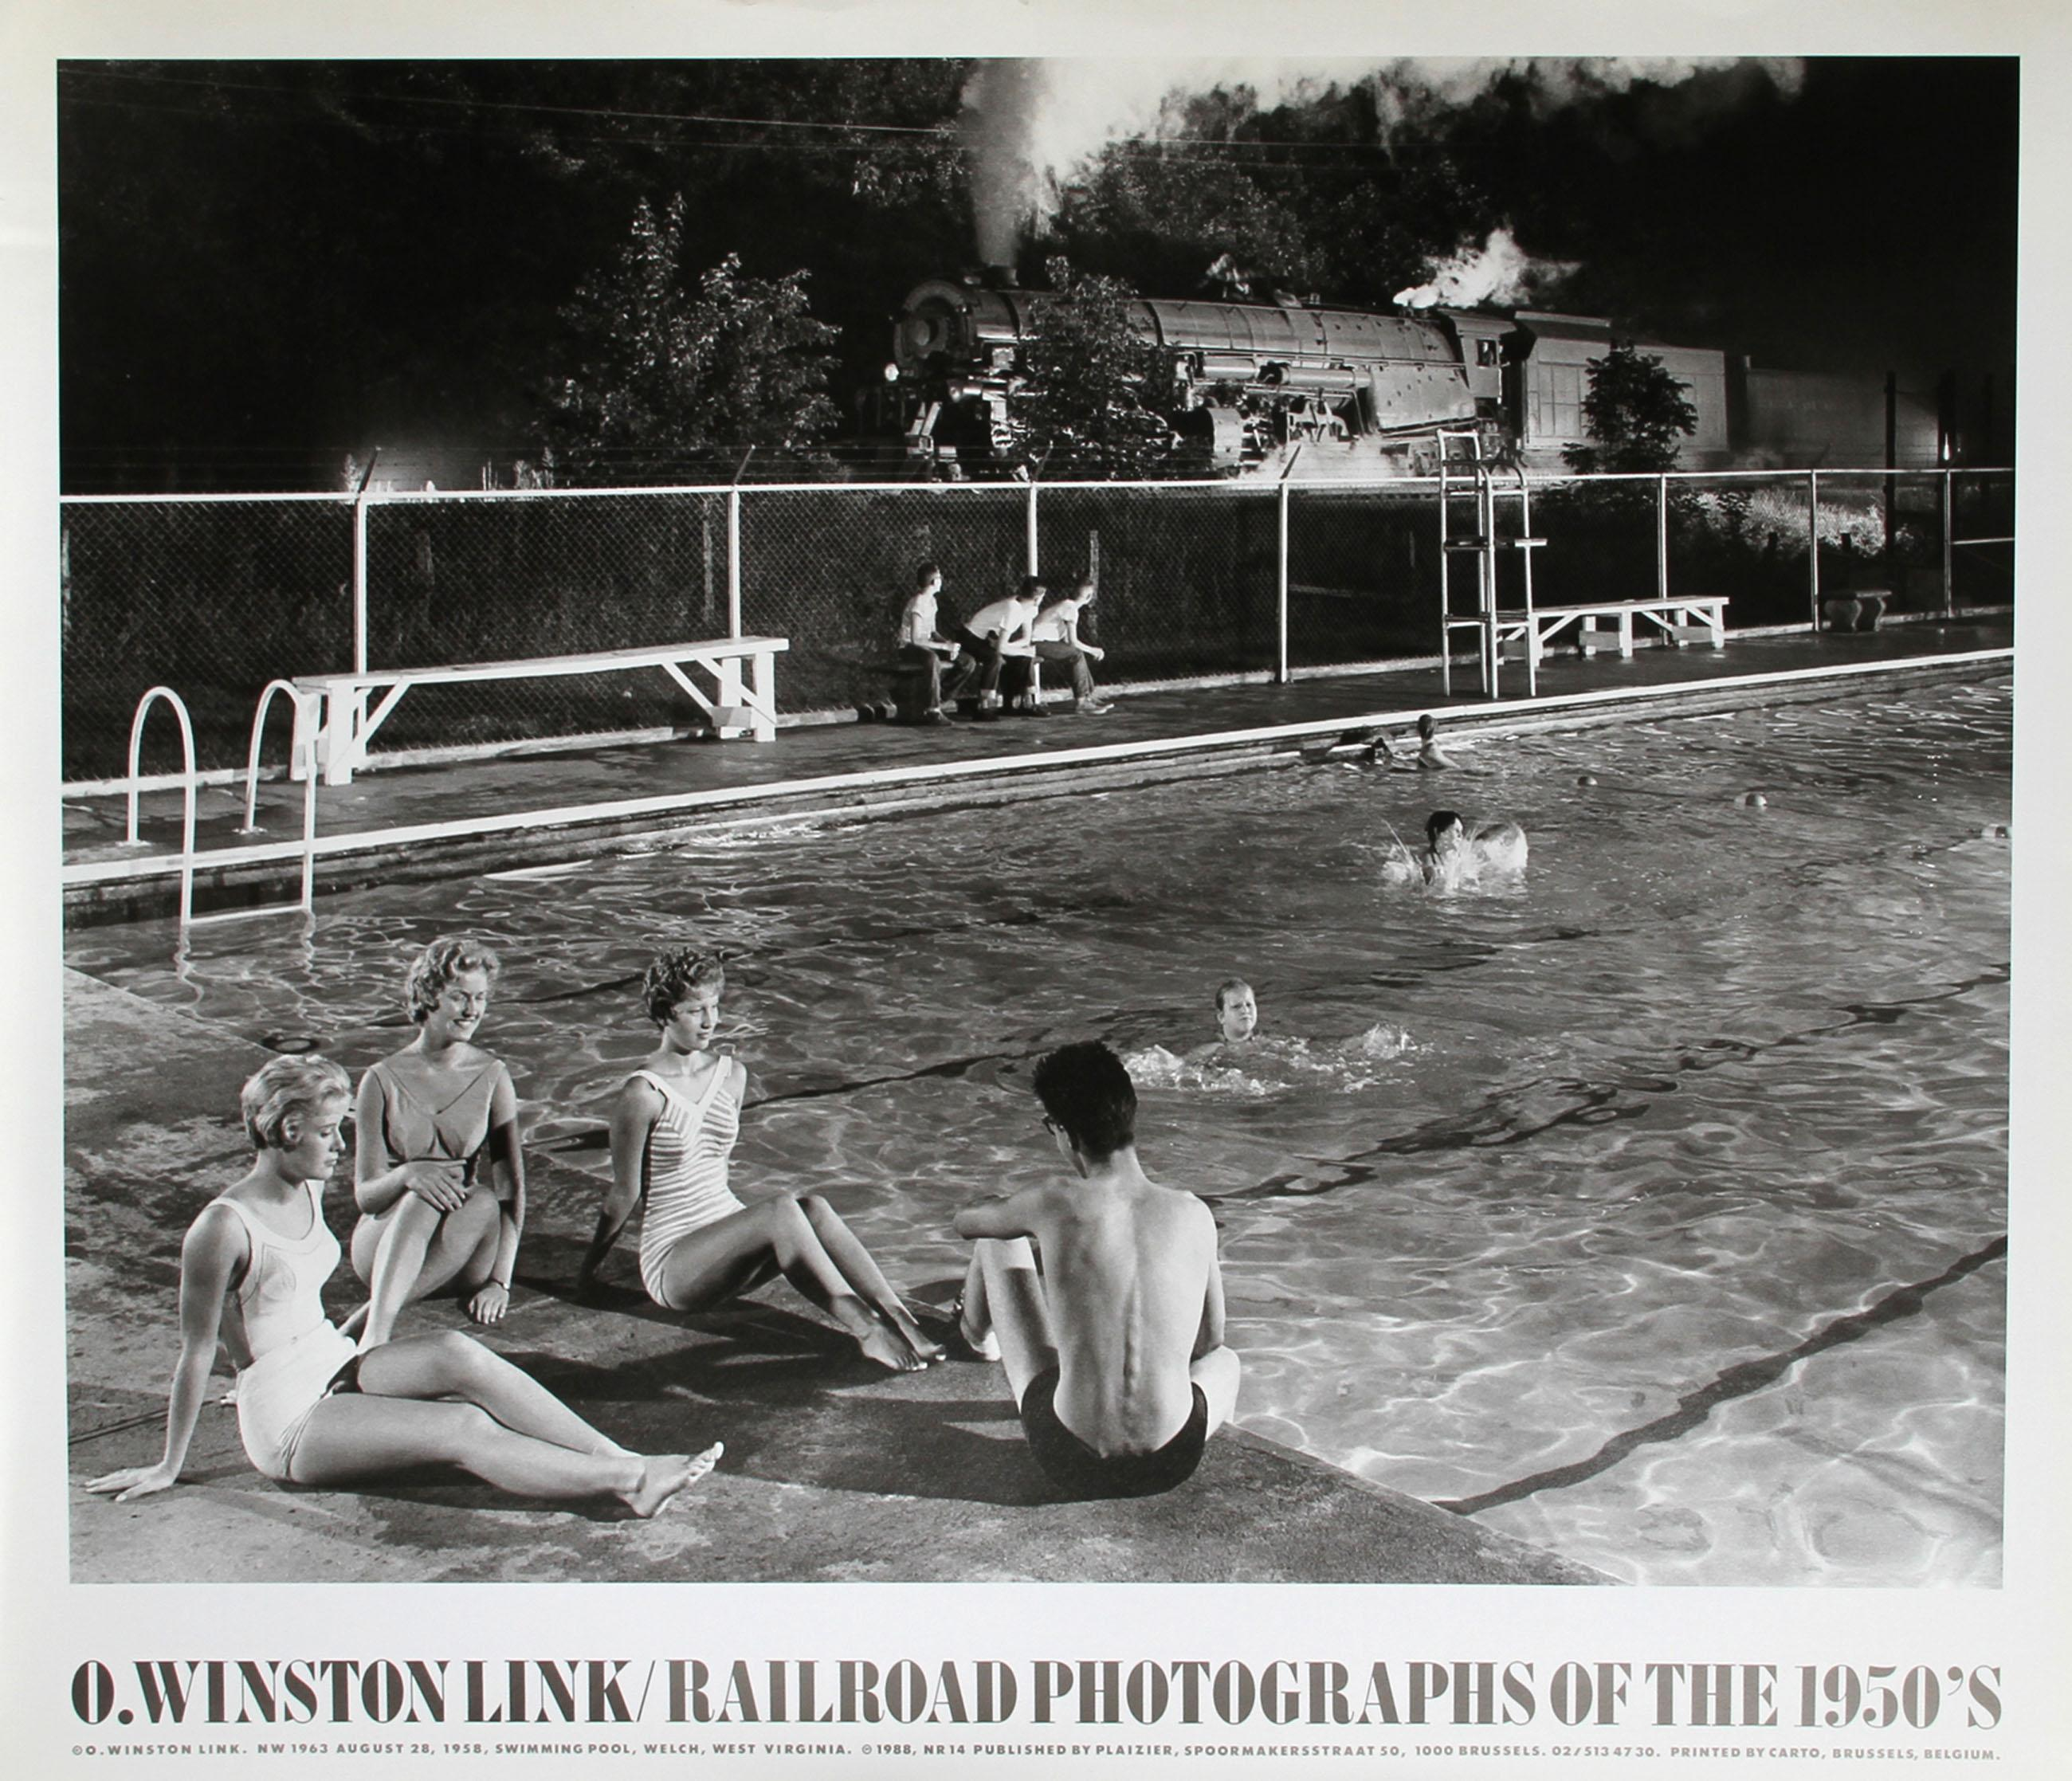 O. Winston Link, Railroad Photographs of the 1950's, Poster